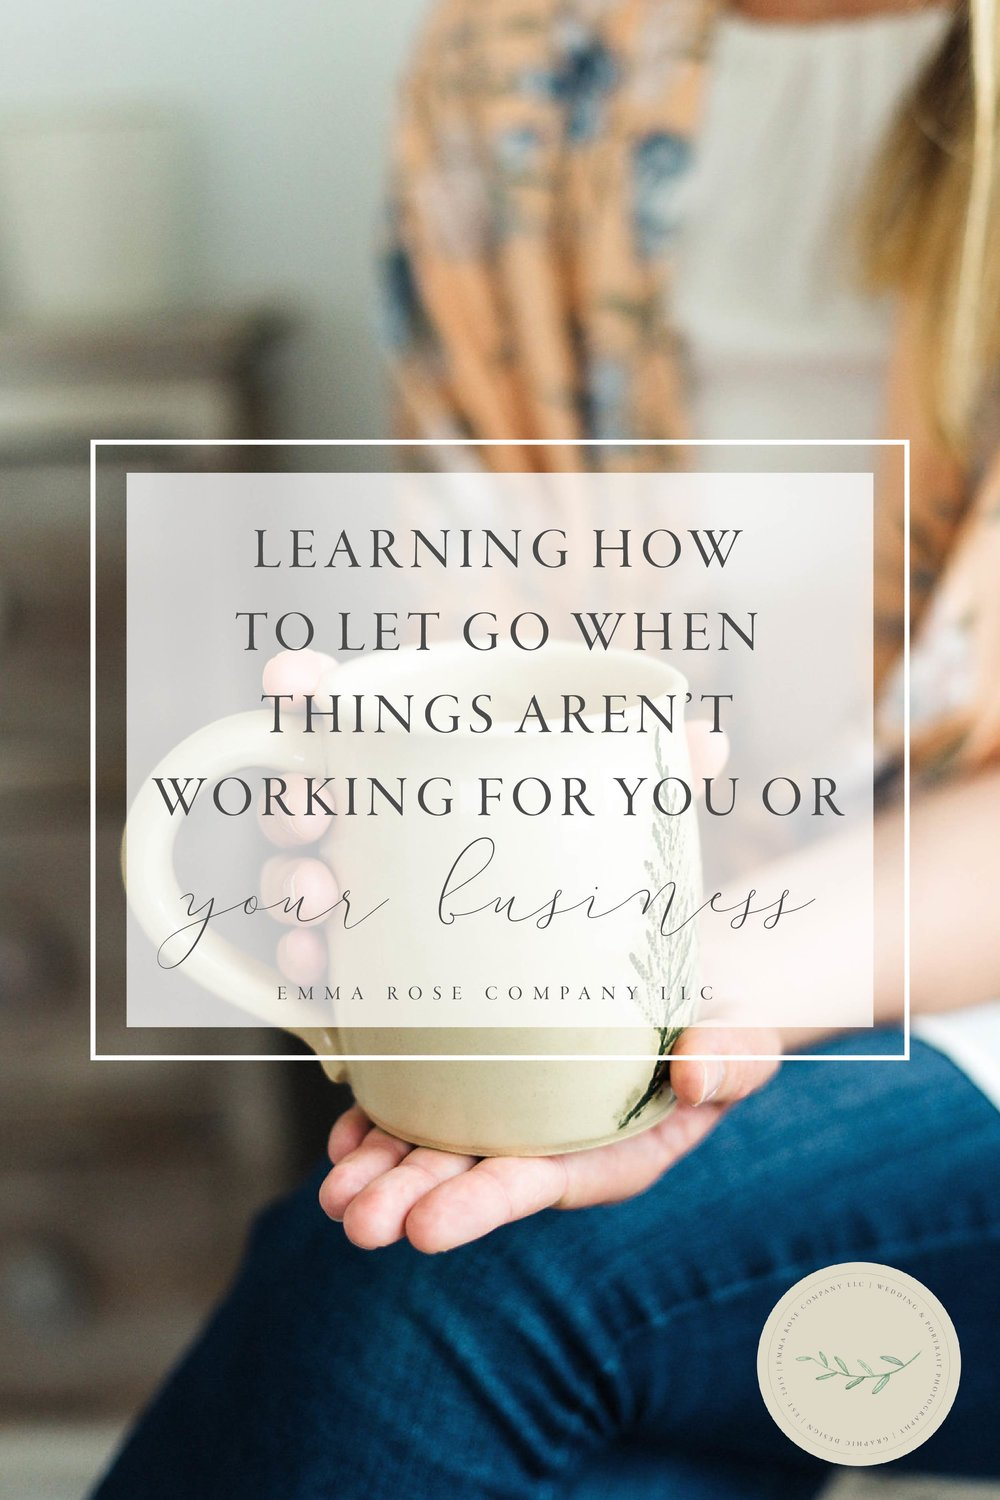 Learning how to let go when things aren't working for you or your business